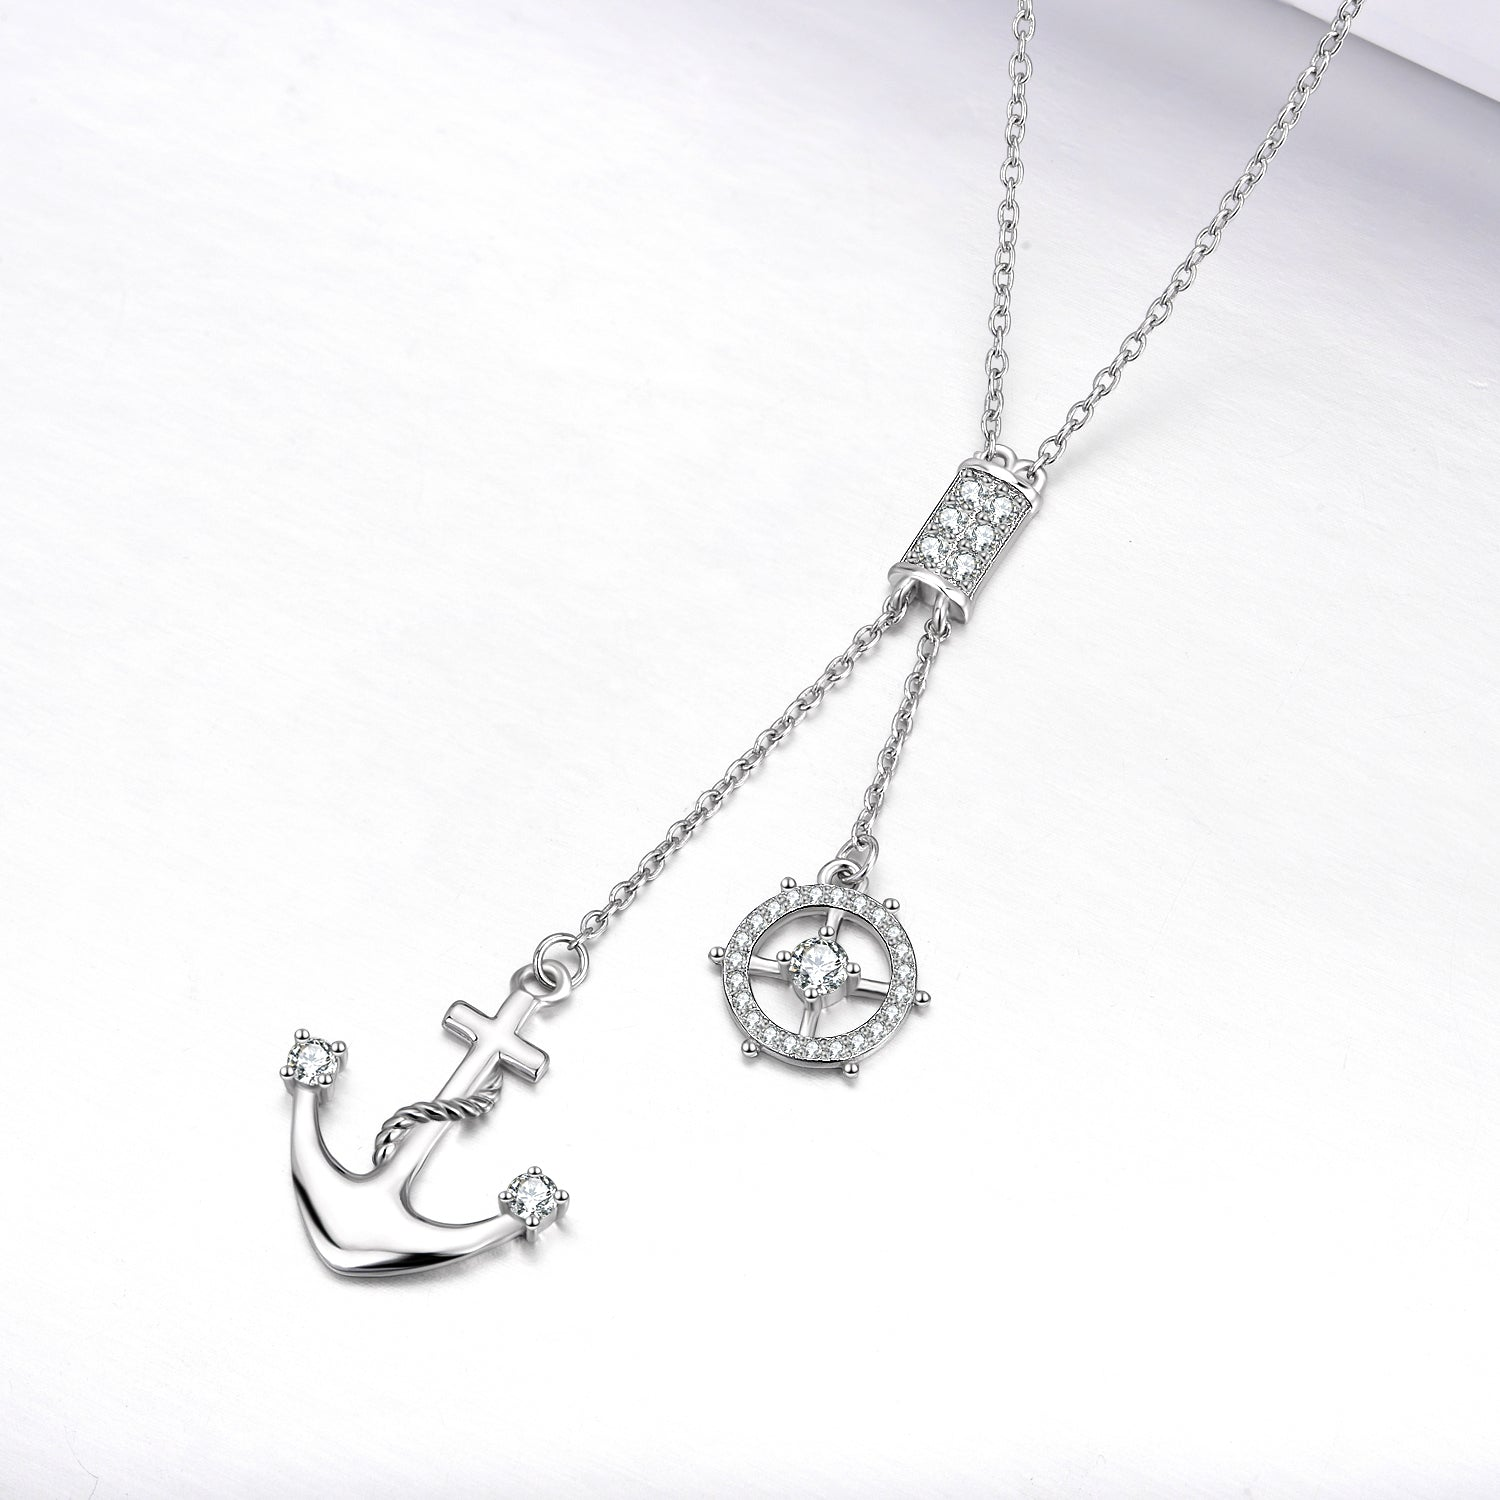 Silver Anchor Cross Pendant Necklace for Man Birthday Gift Jewelry